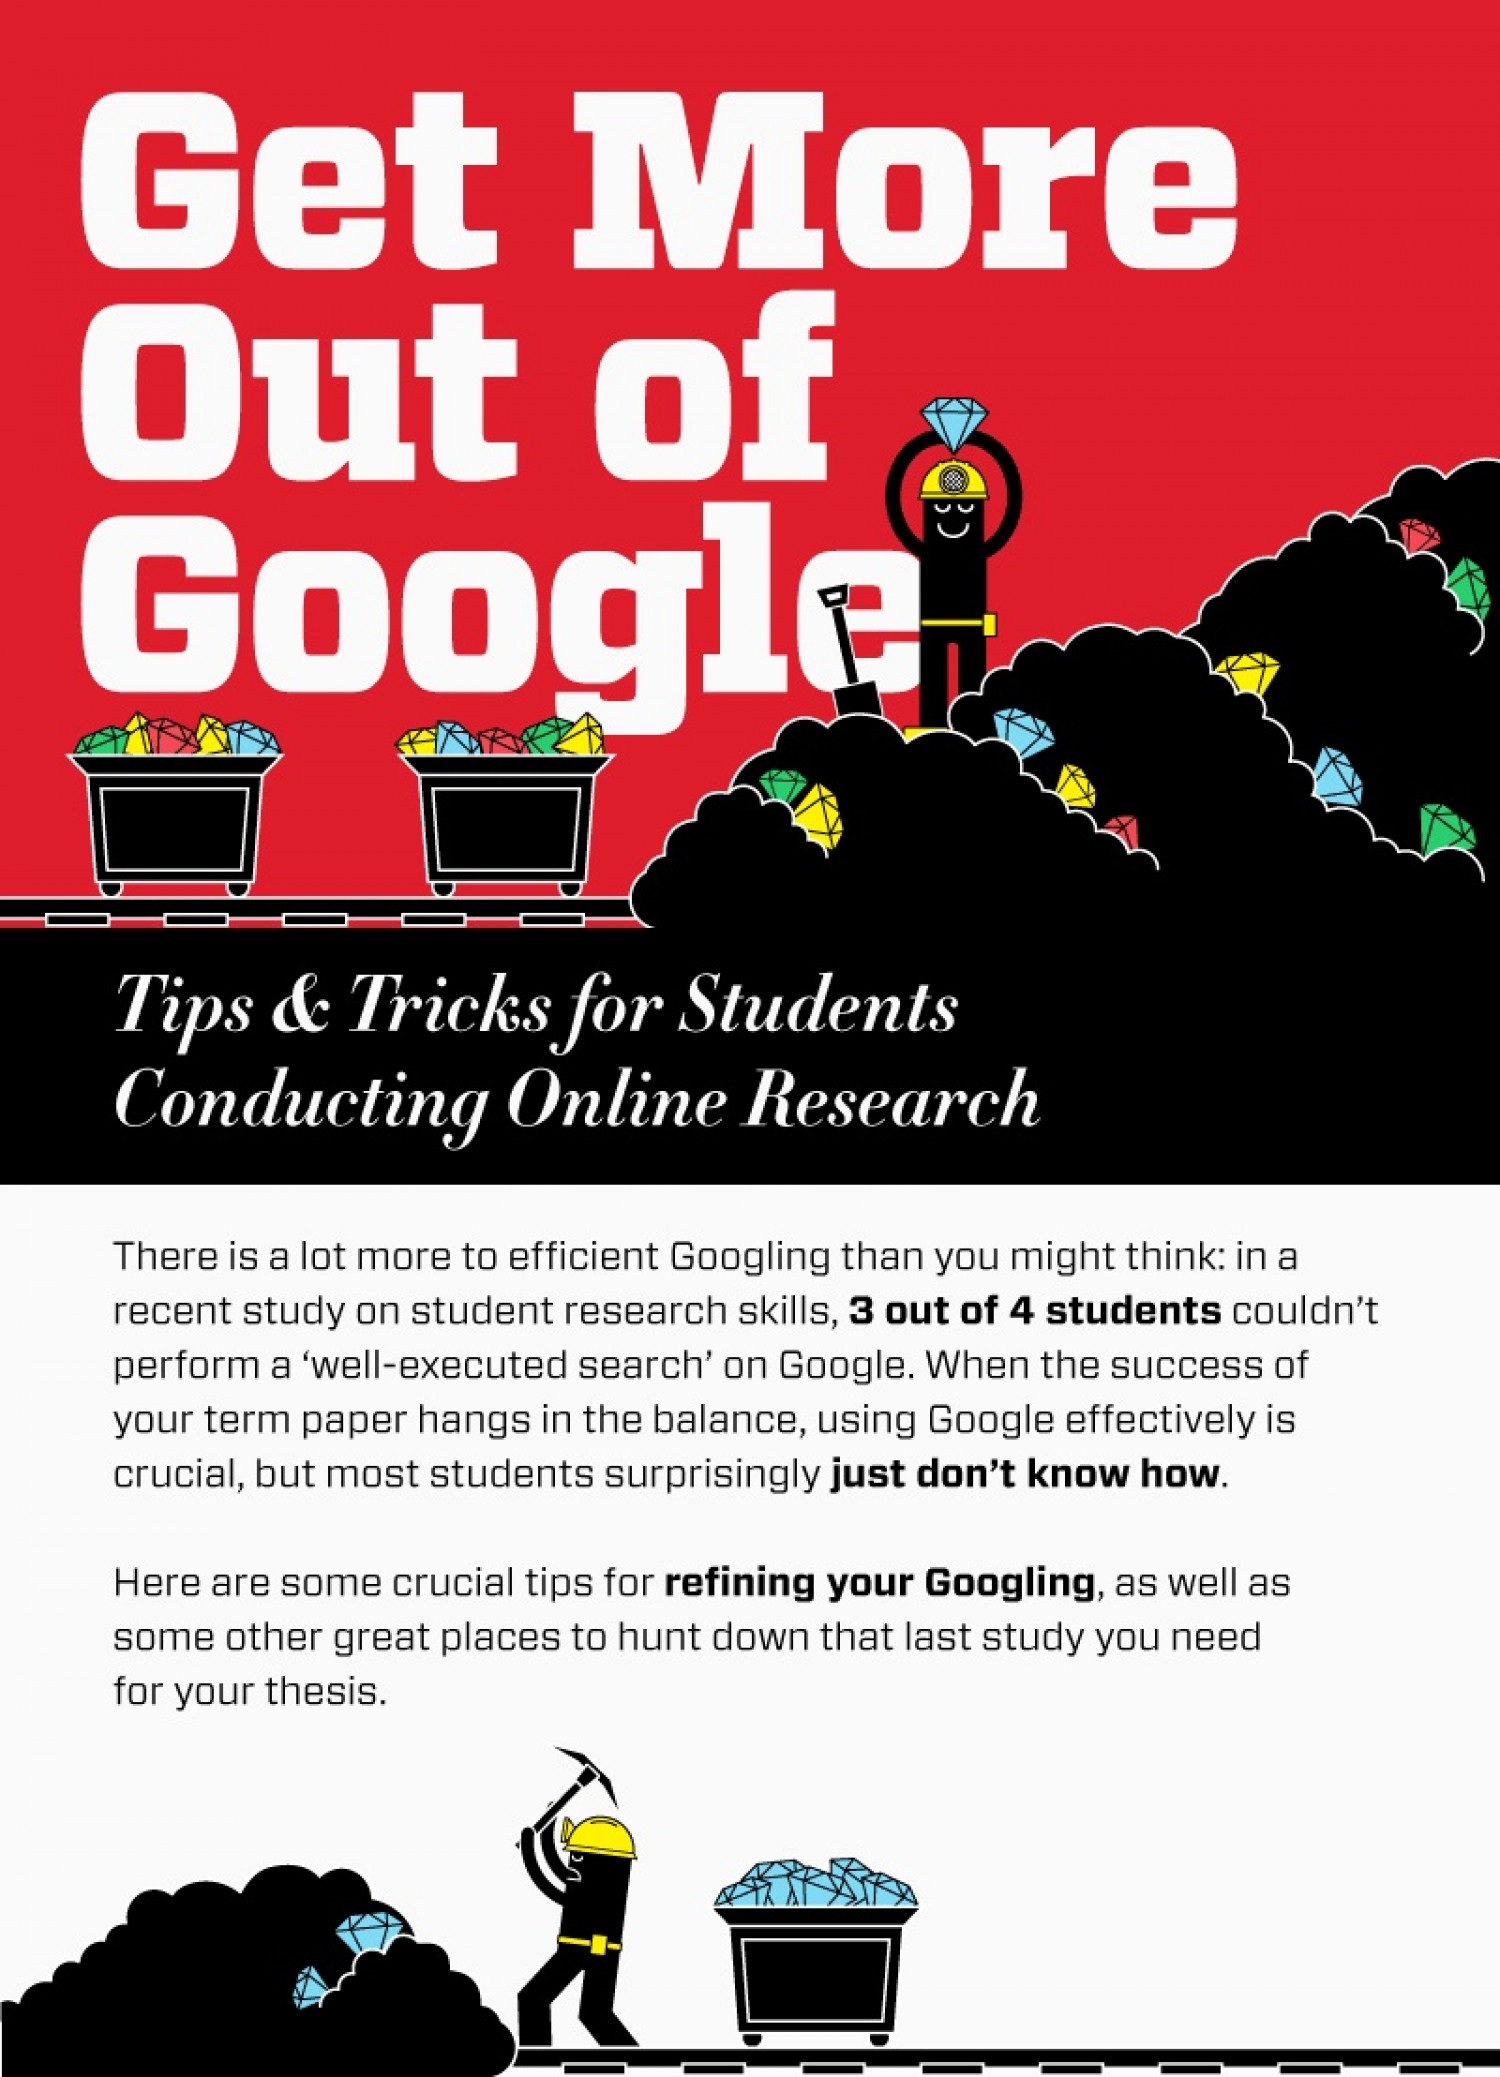 Get More Out Of Google Infographic